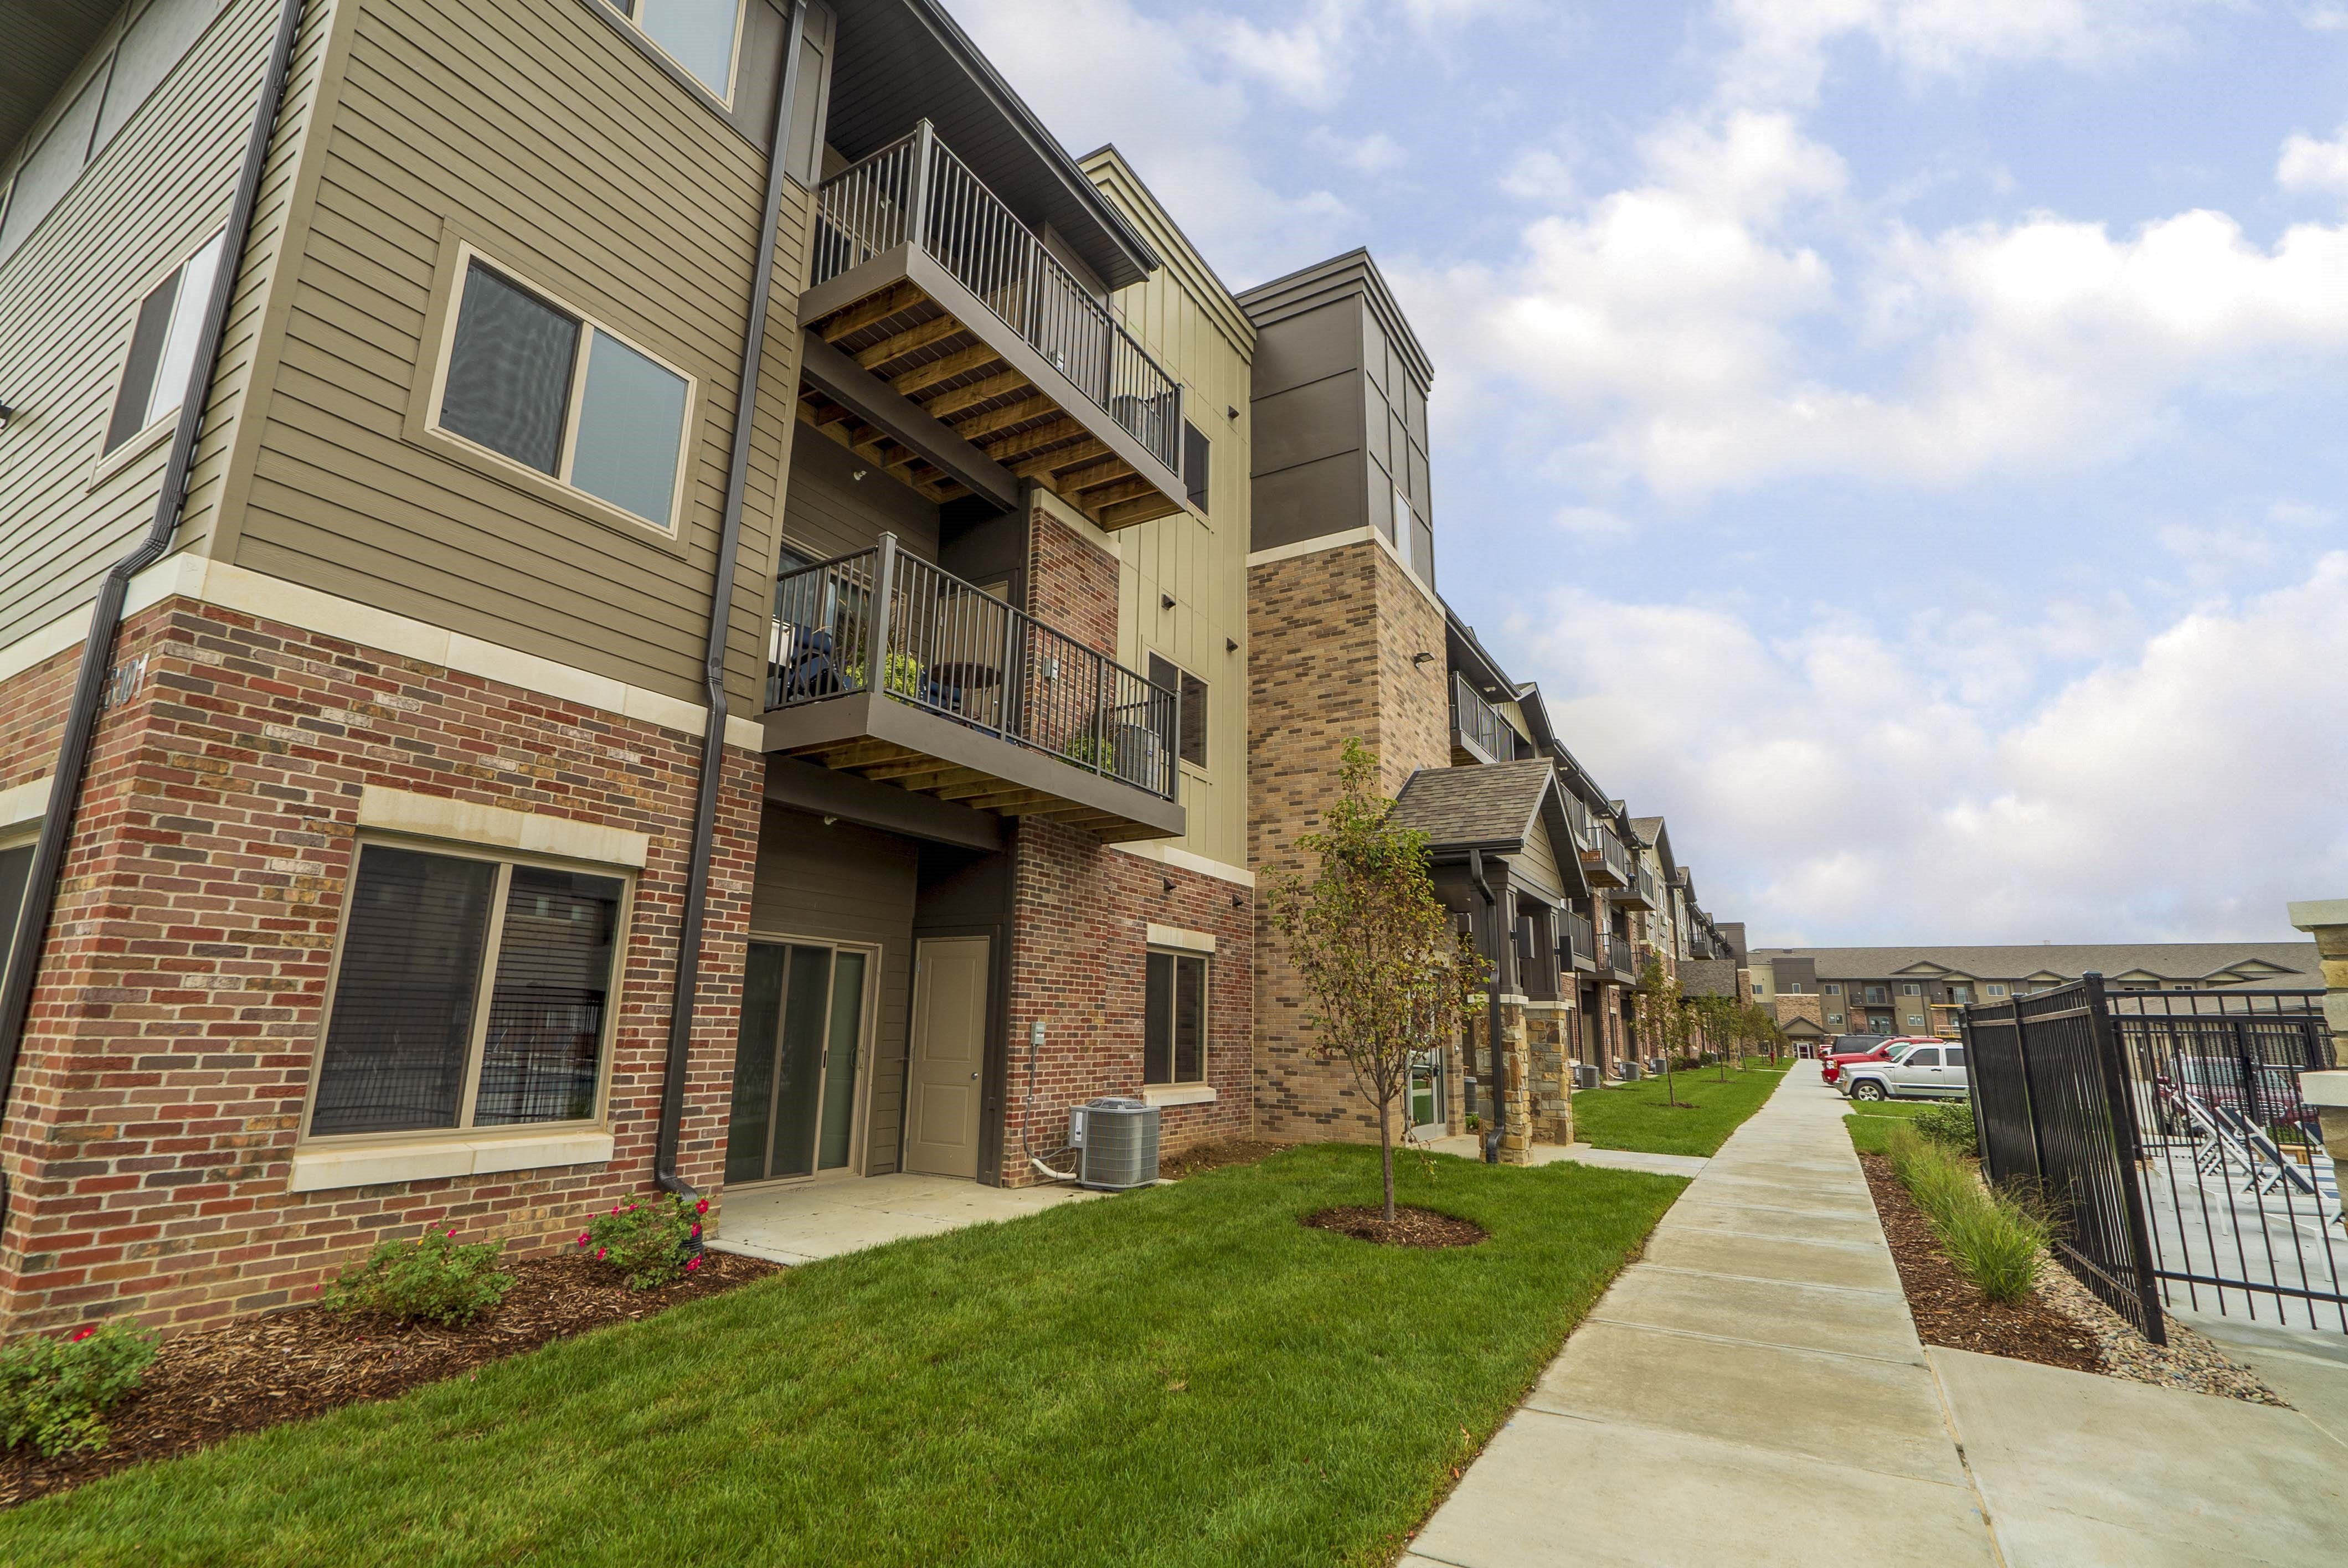 Exterior - WH Flats new luxury apartments in south Lincoln NE 68516